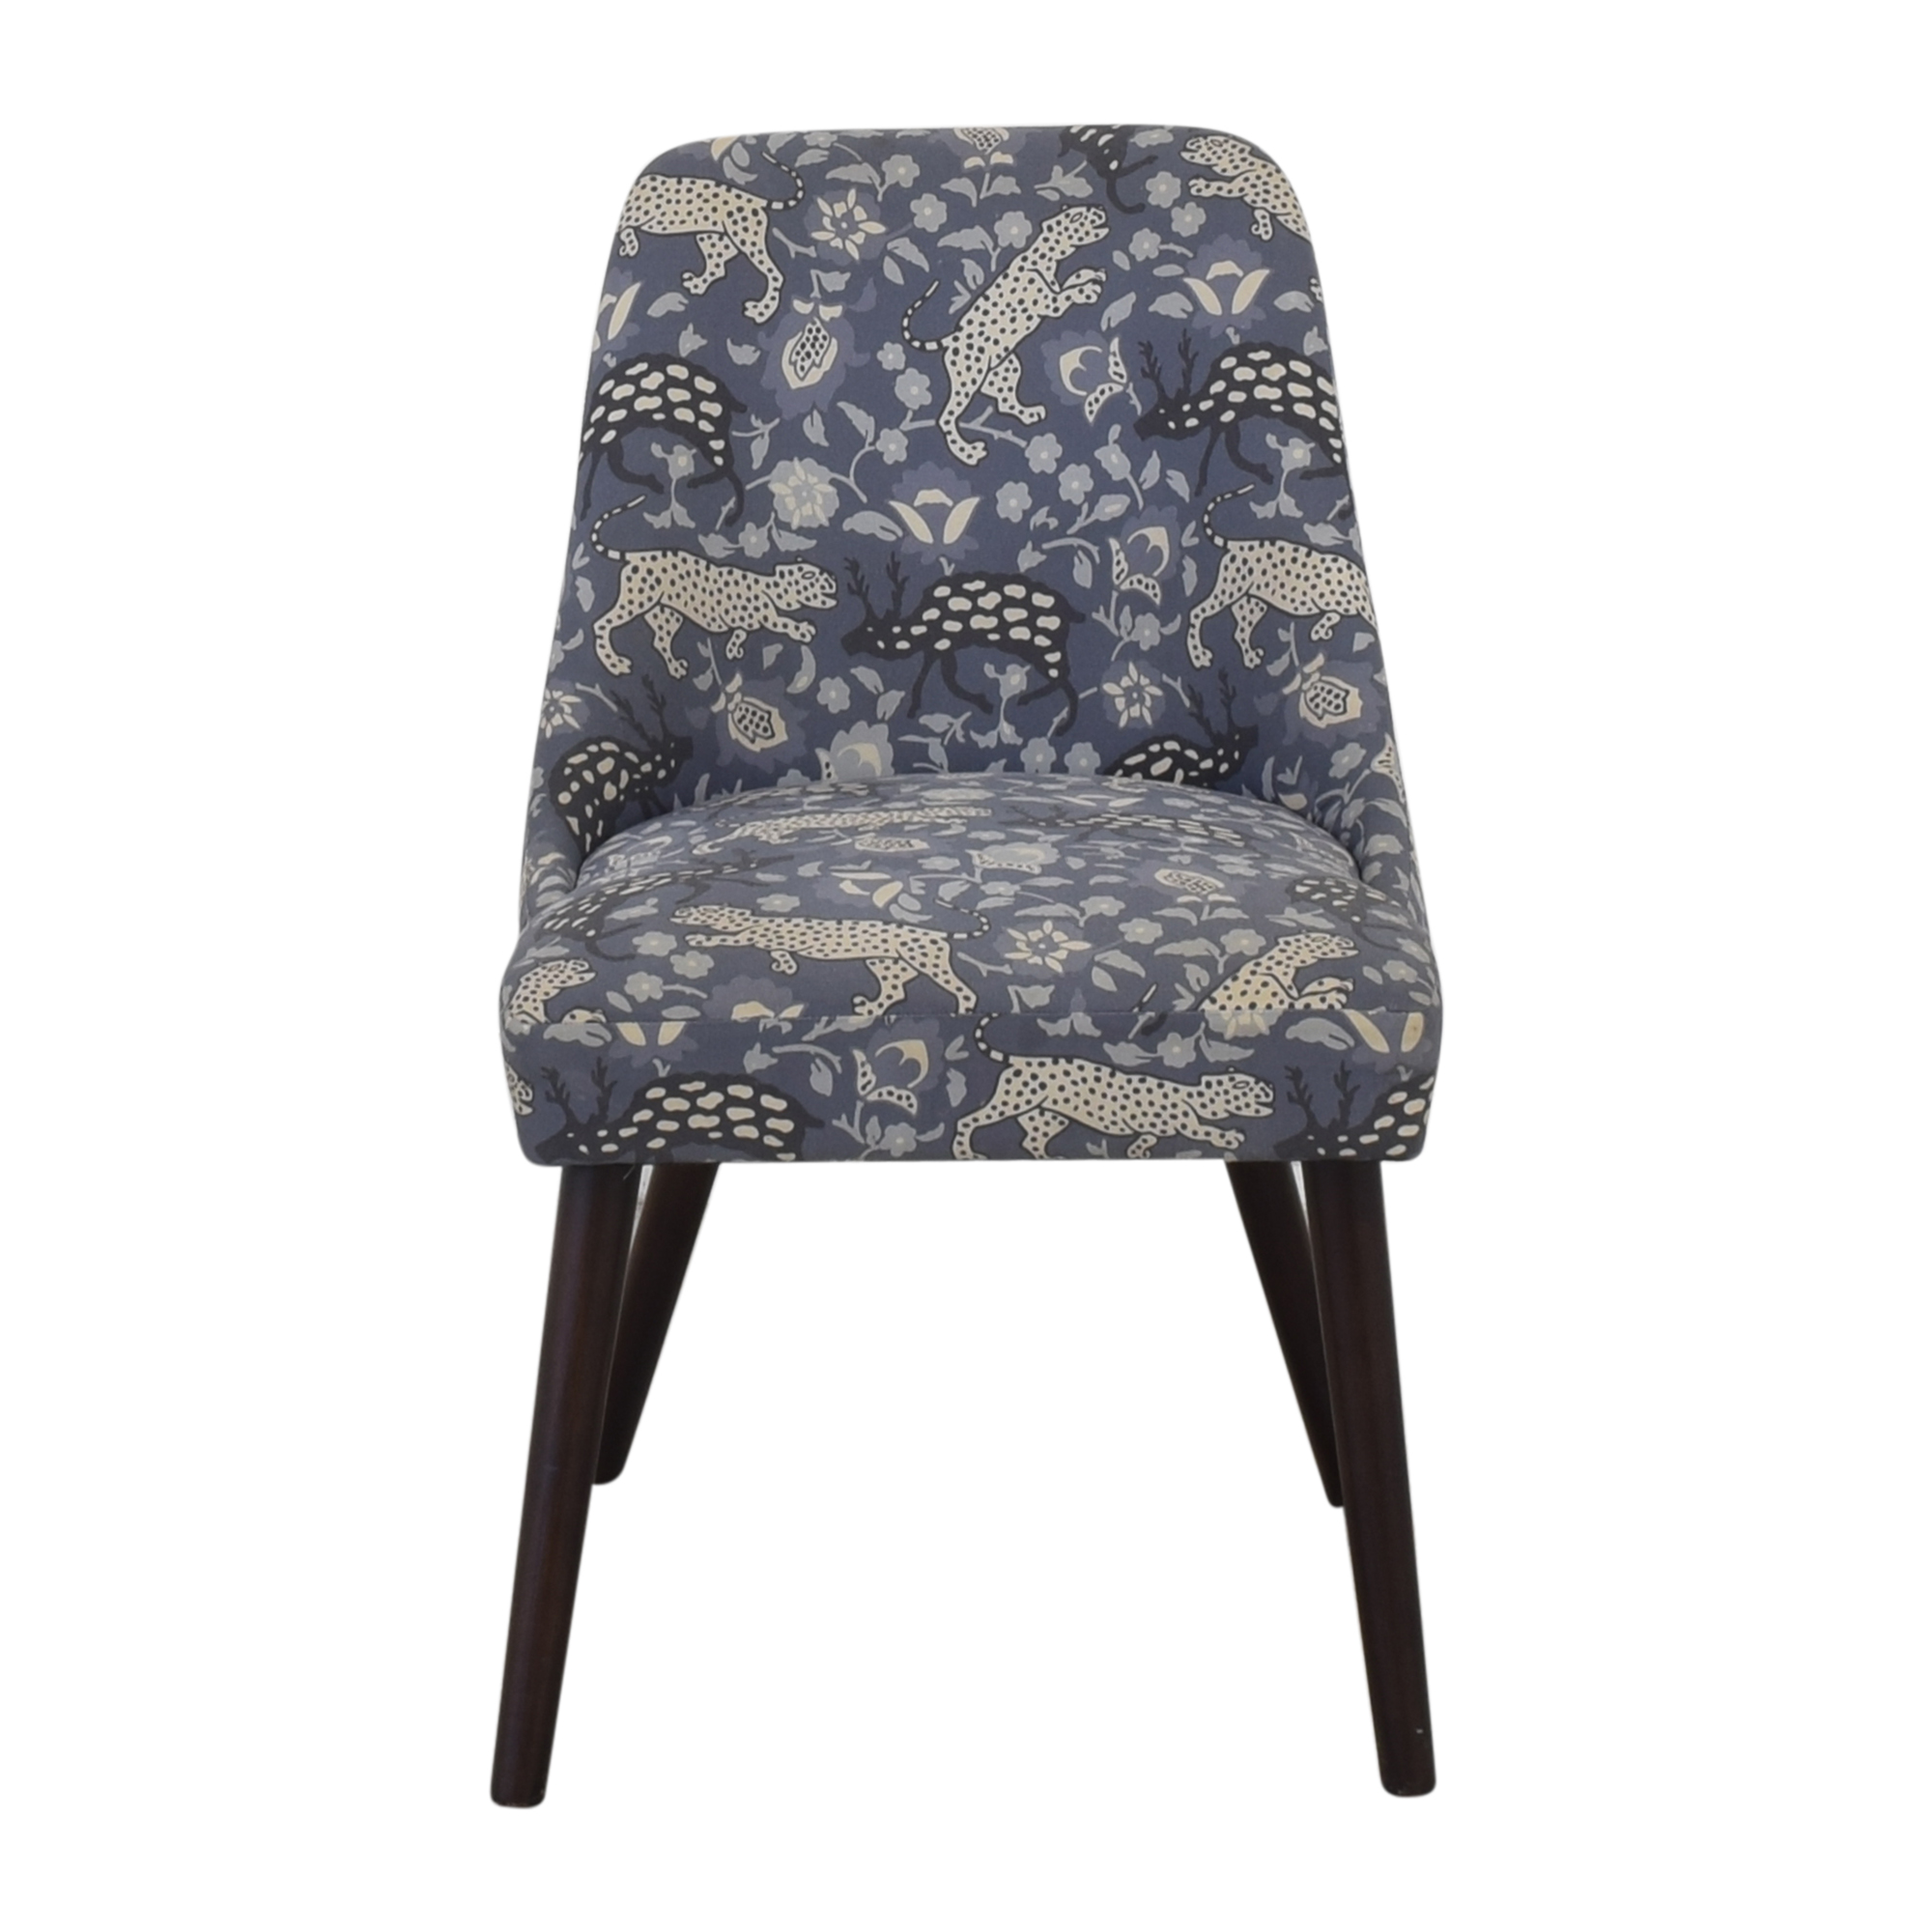 Skyline Furniture Skyline Patterned Upholstered Dining Chair Chairs